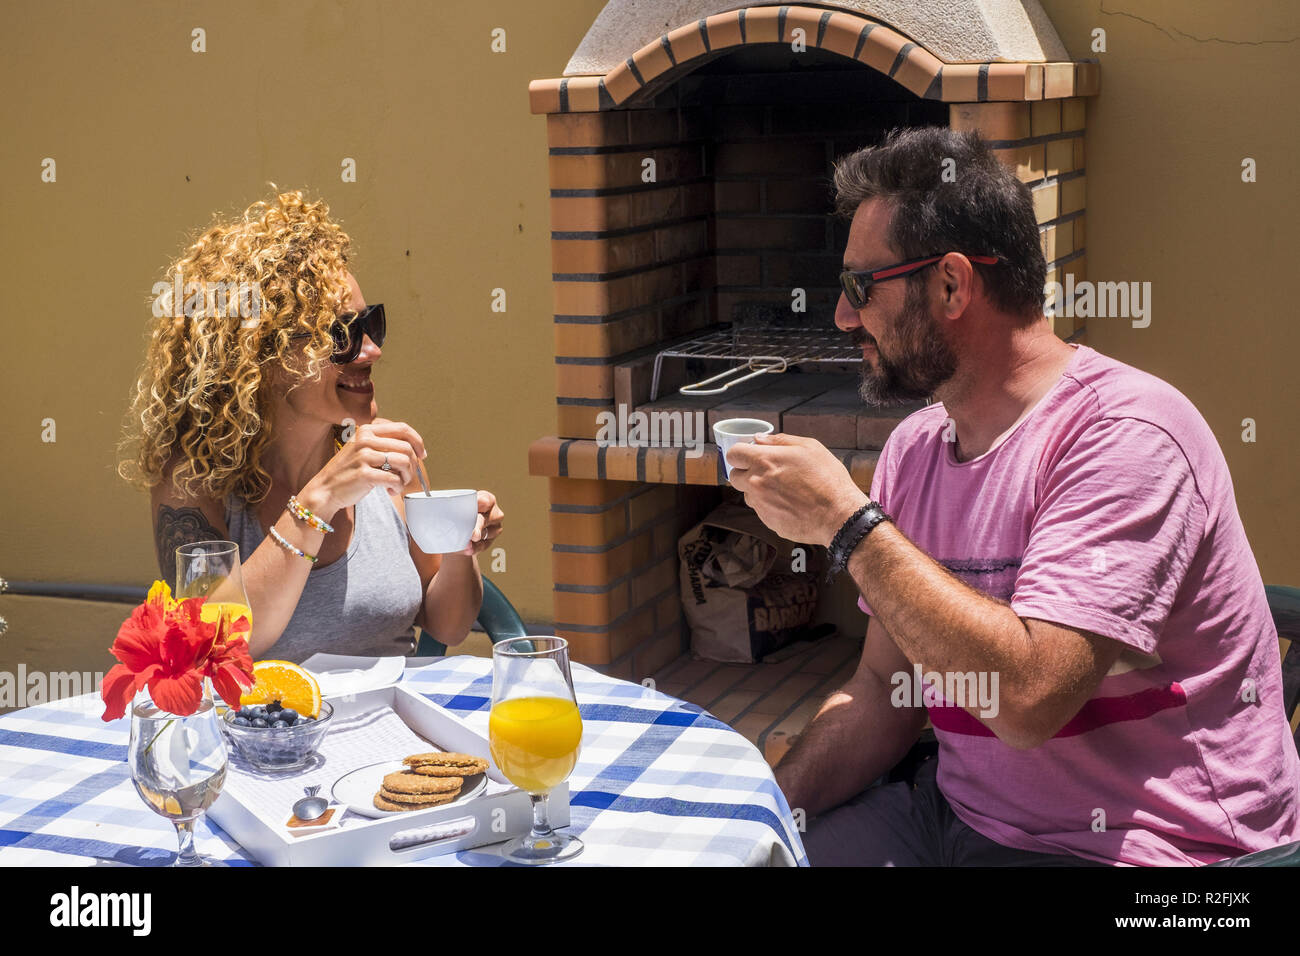 nice cheerful caucasian couple having breakfast outdoor at home near a grill barbecue. smile and spent sime good time together for adult couple. - Stock Image